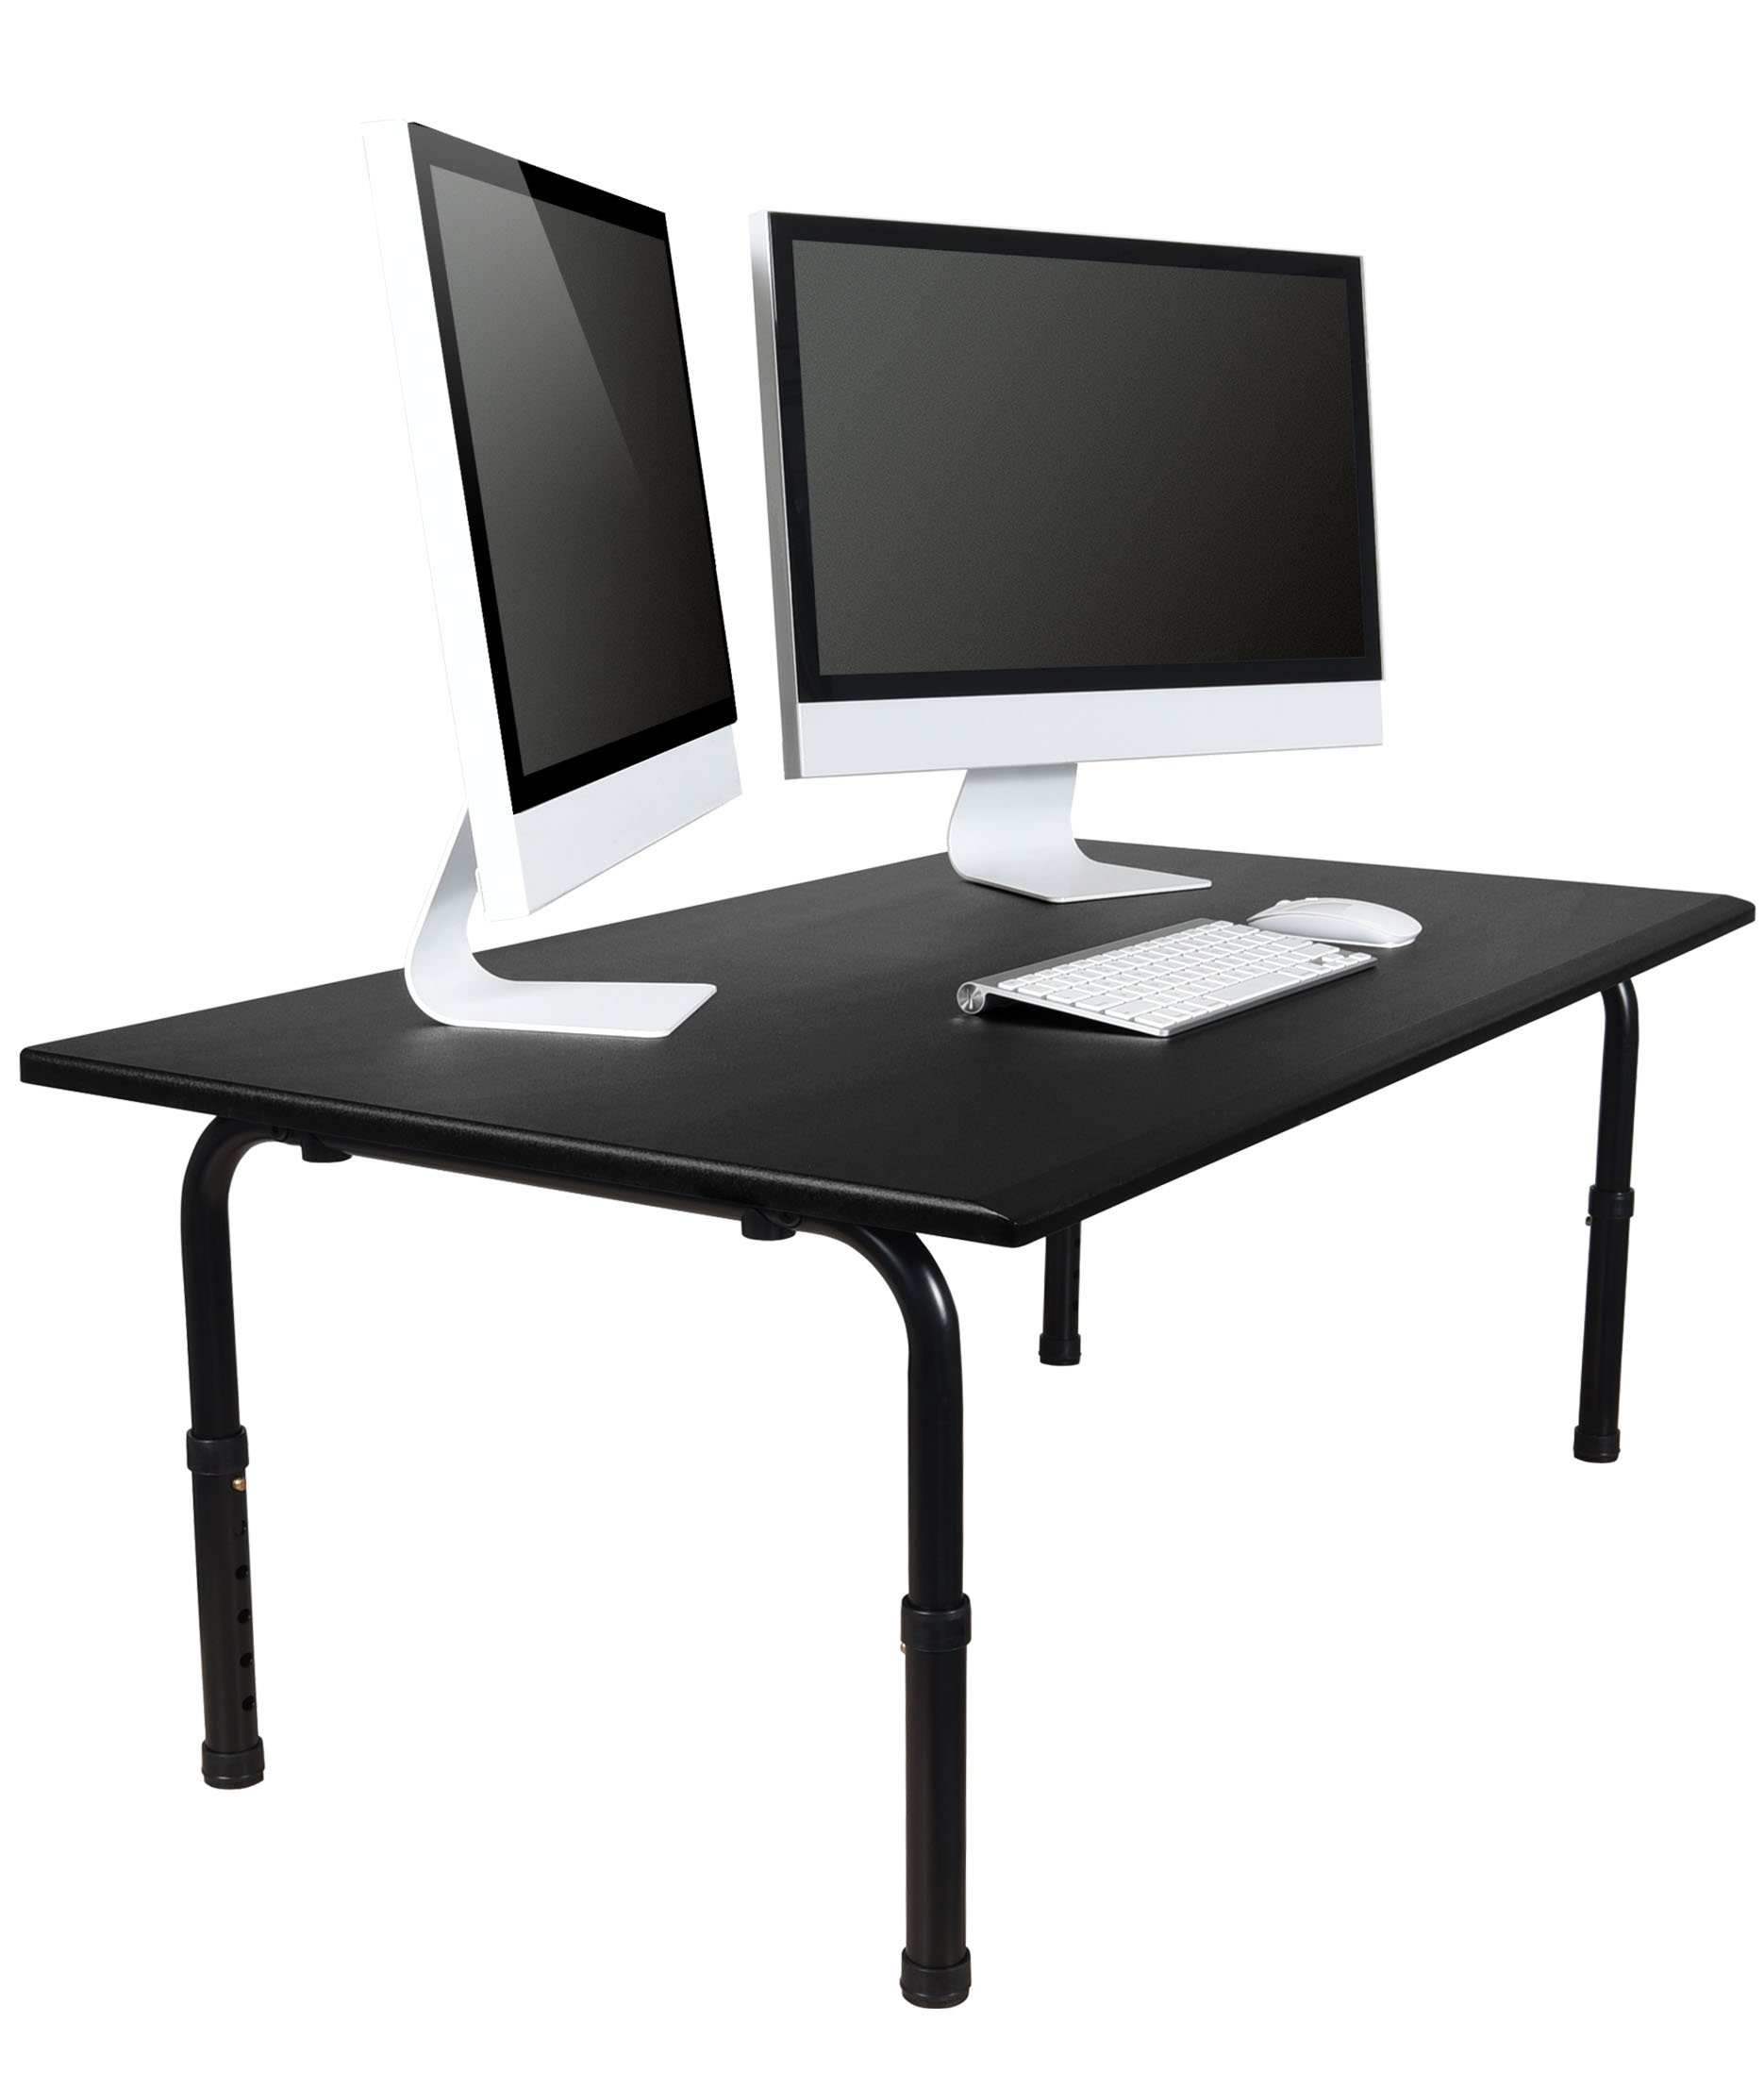 "42"" Wide Adjustable Height Standing Desk – Convert Your Desk to a Standing Desk"